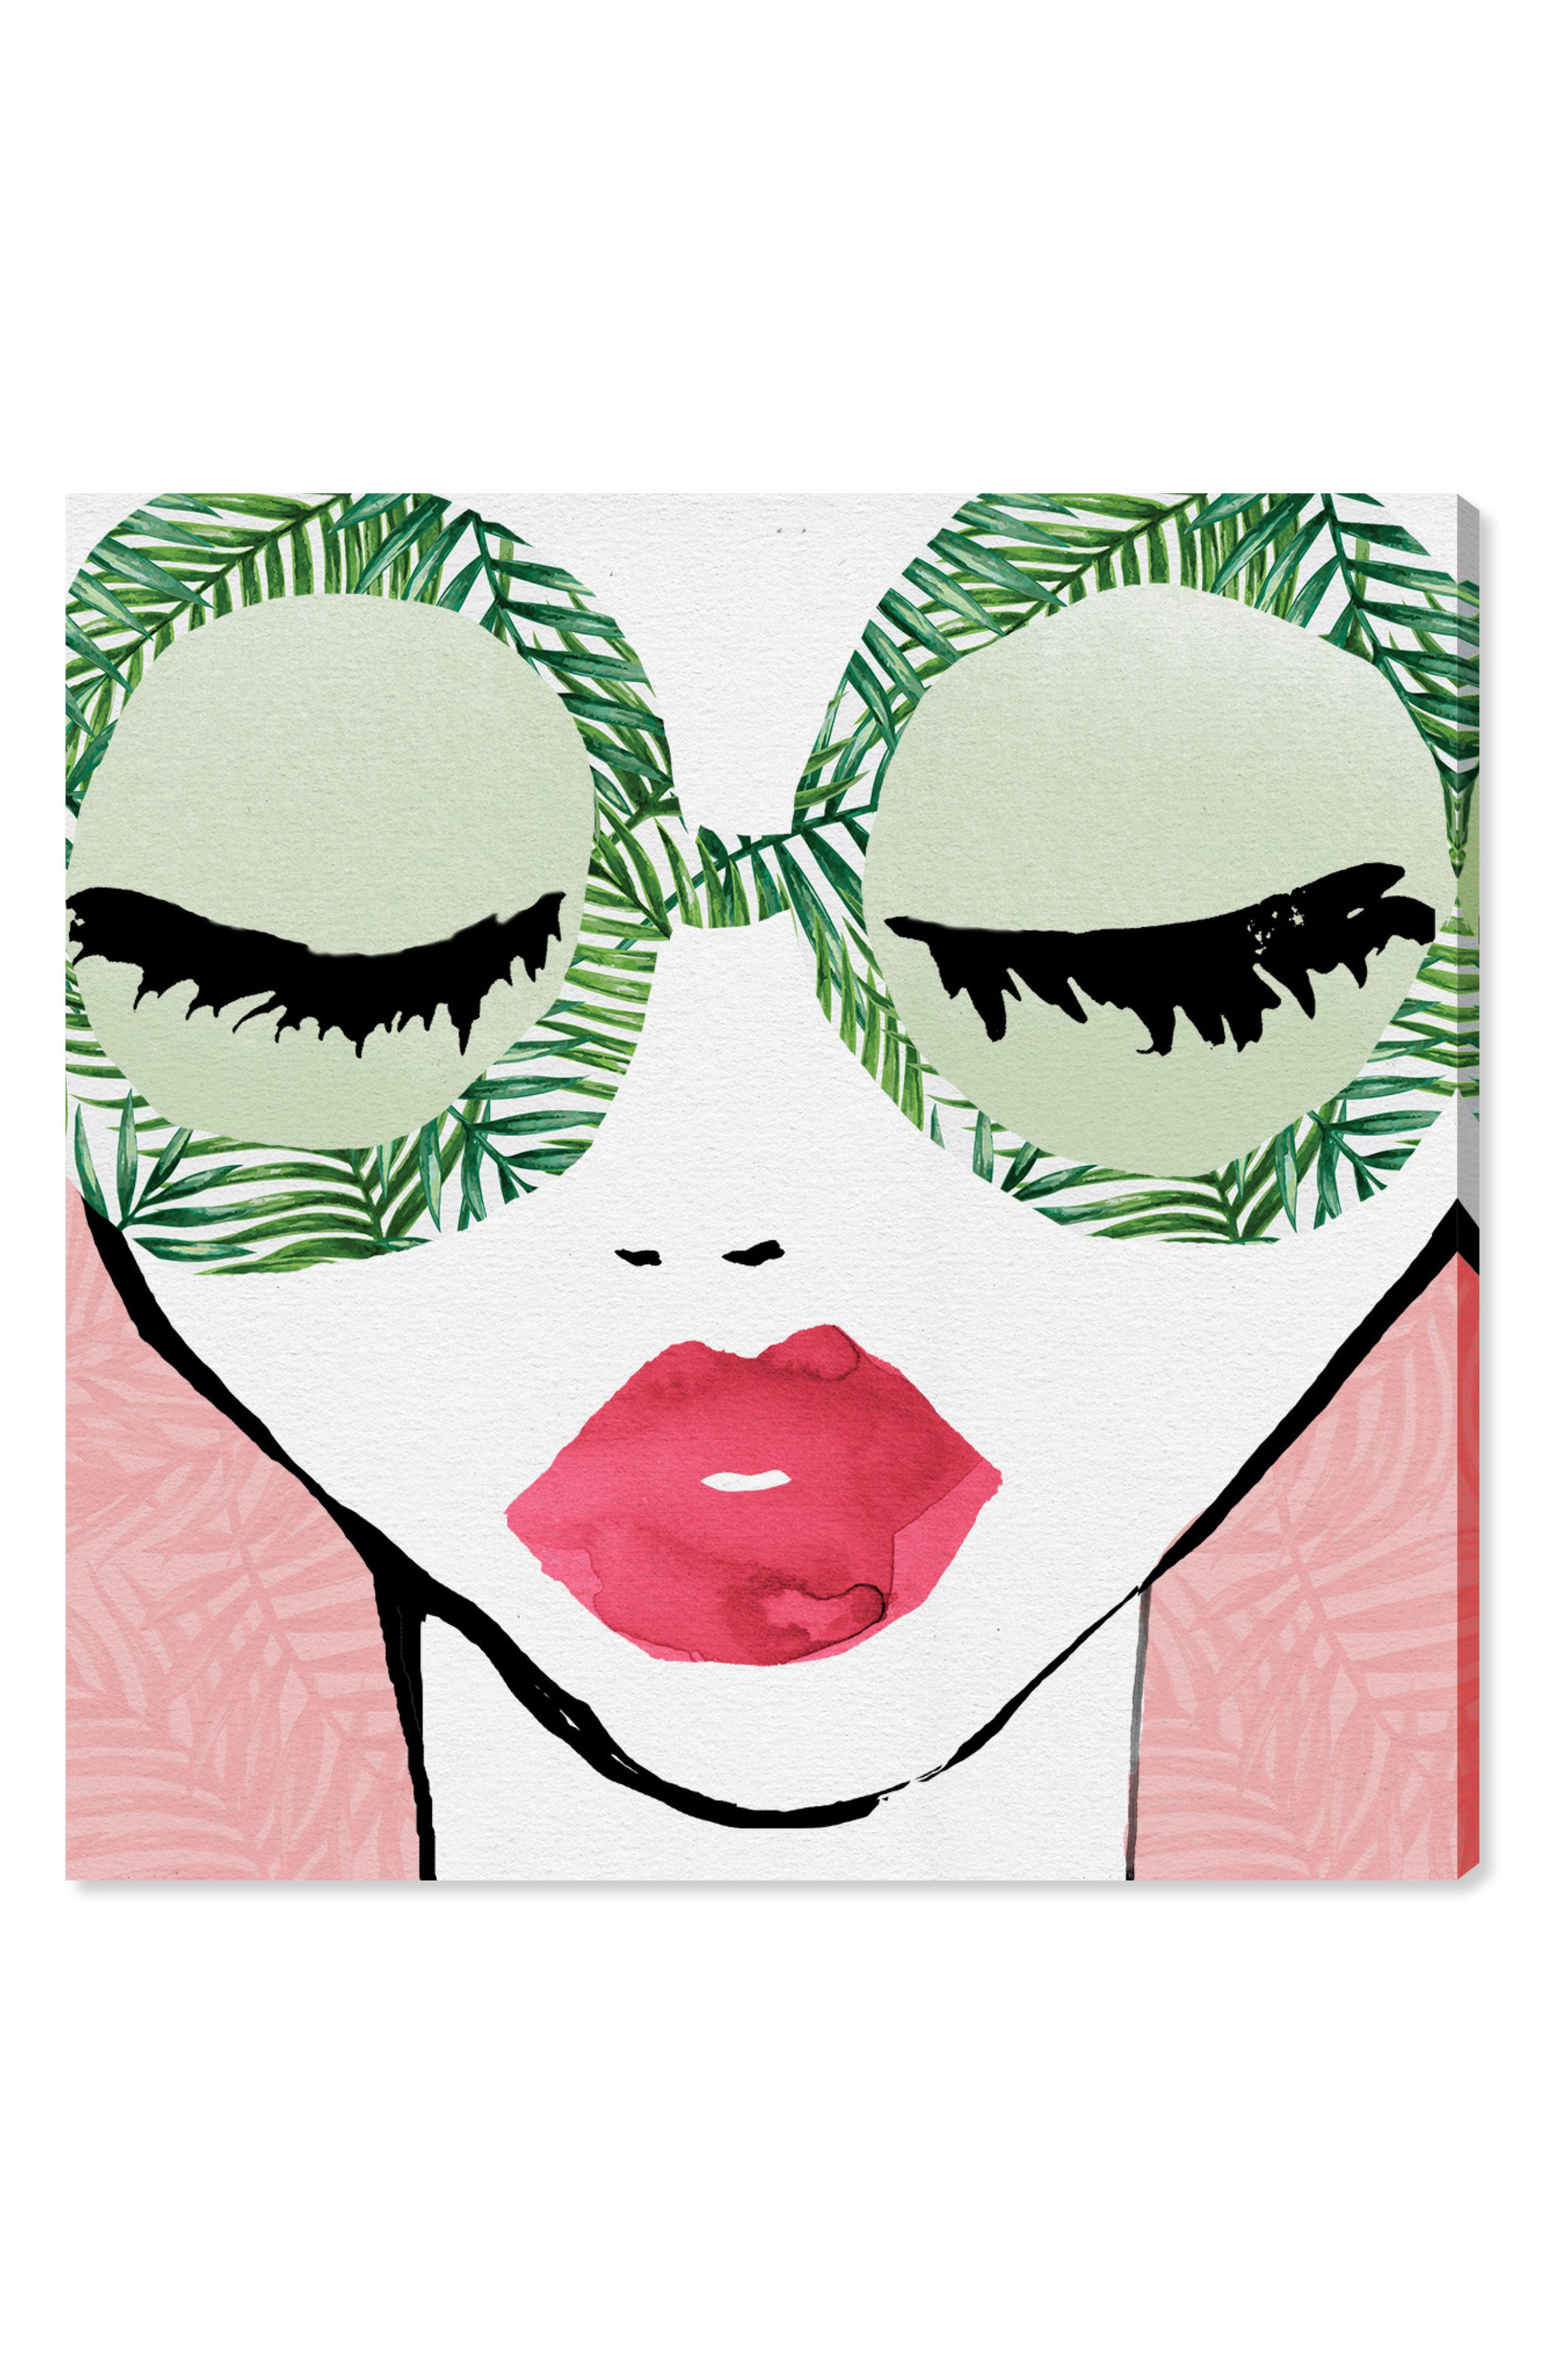 Main Image - Oliver Gal Plant Lady Glasses Canvas Wall Art